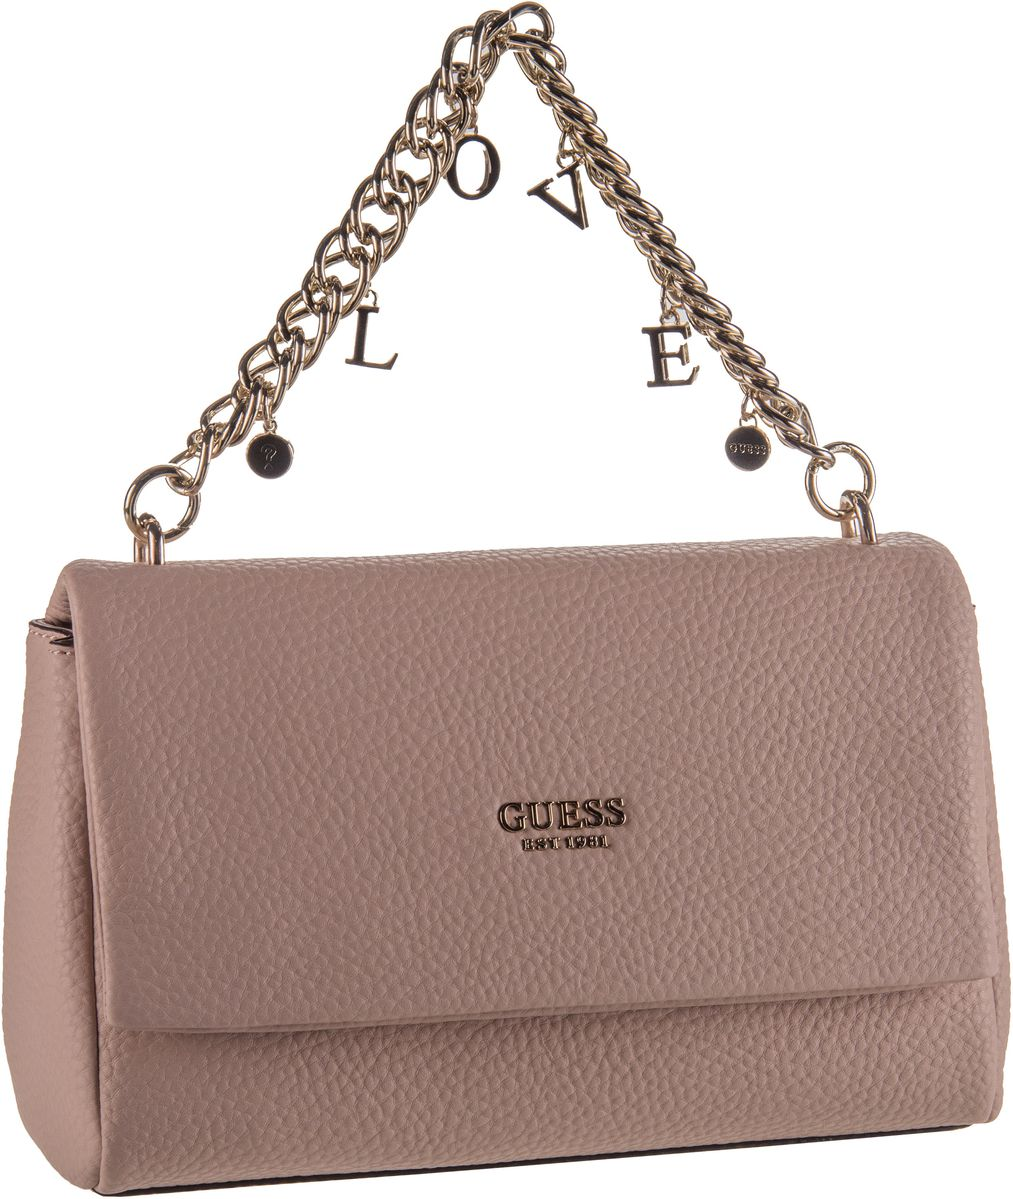 Handtasche Conner Shoulder Bag Nude